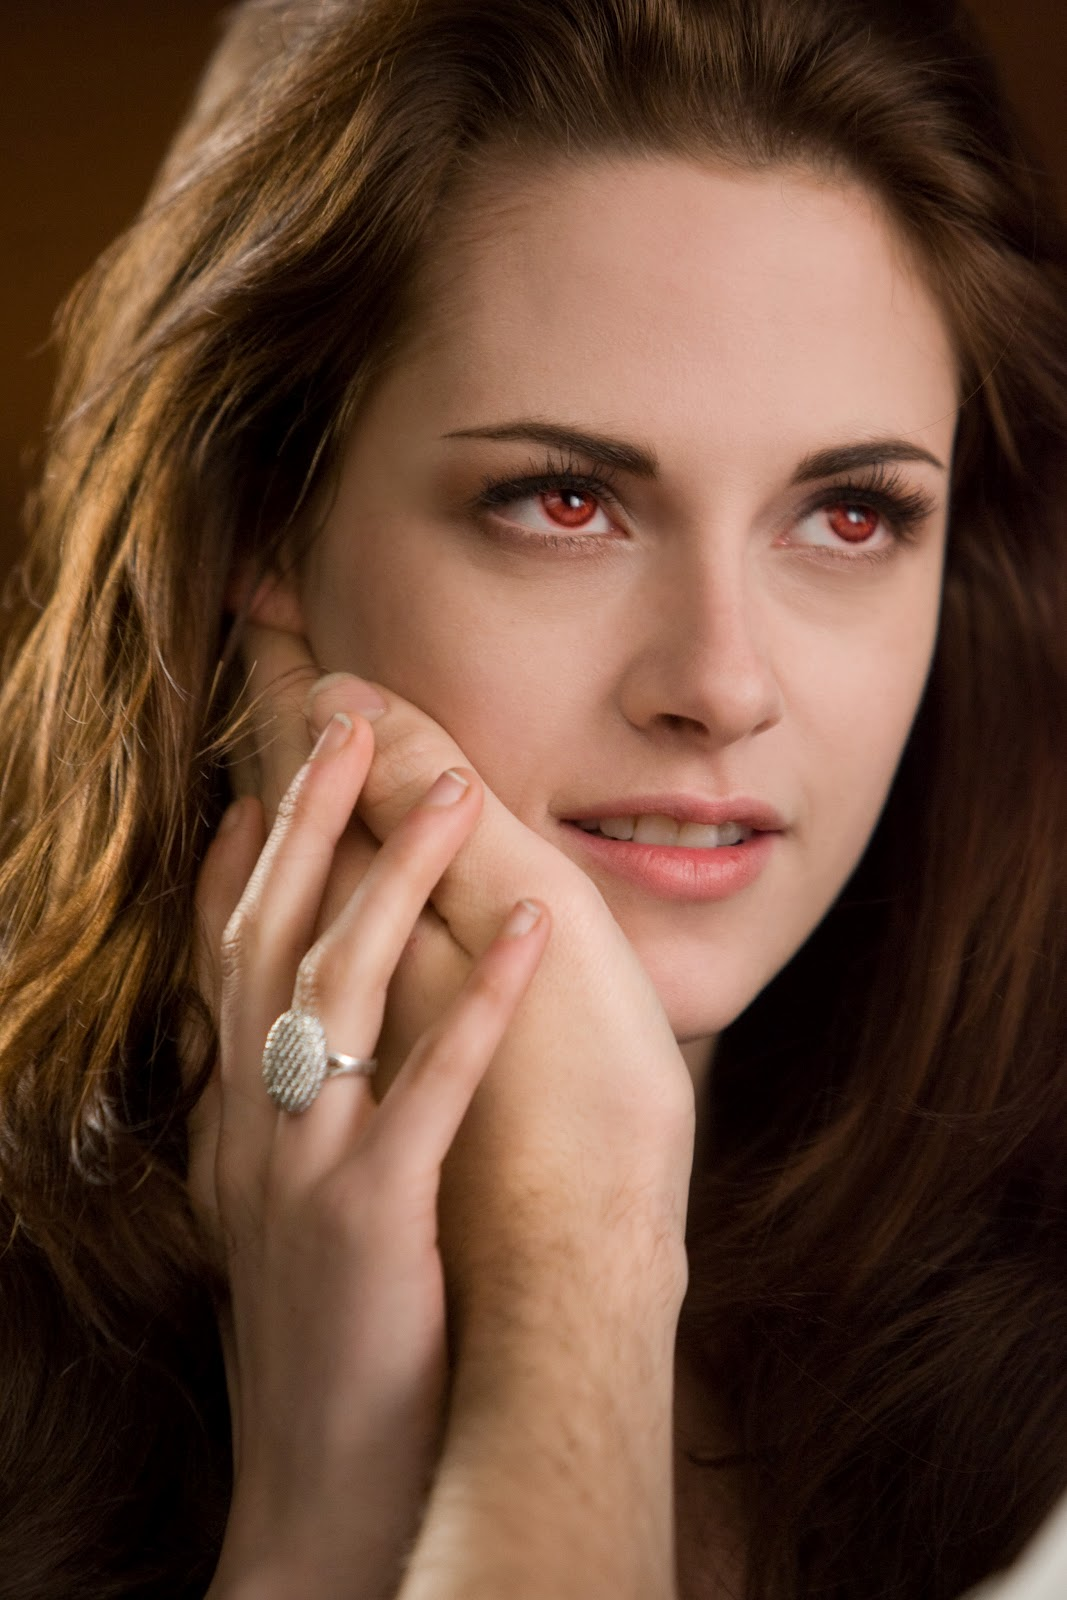 vampire bella bdpt2 hq stills bella swan photo